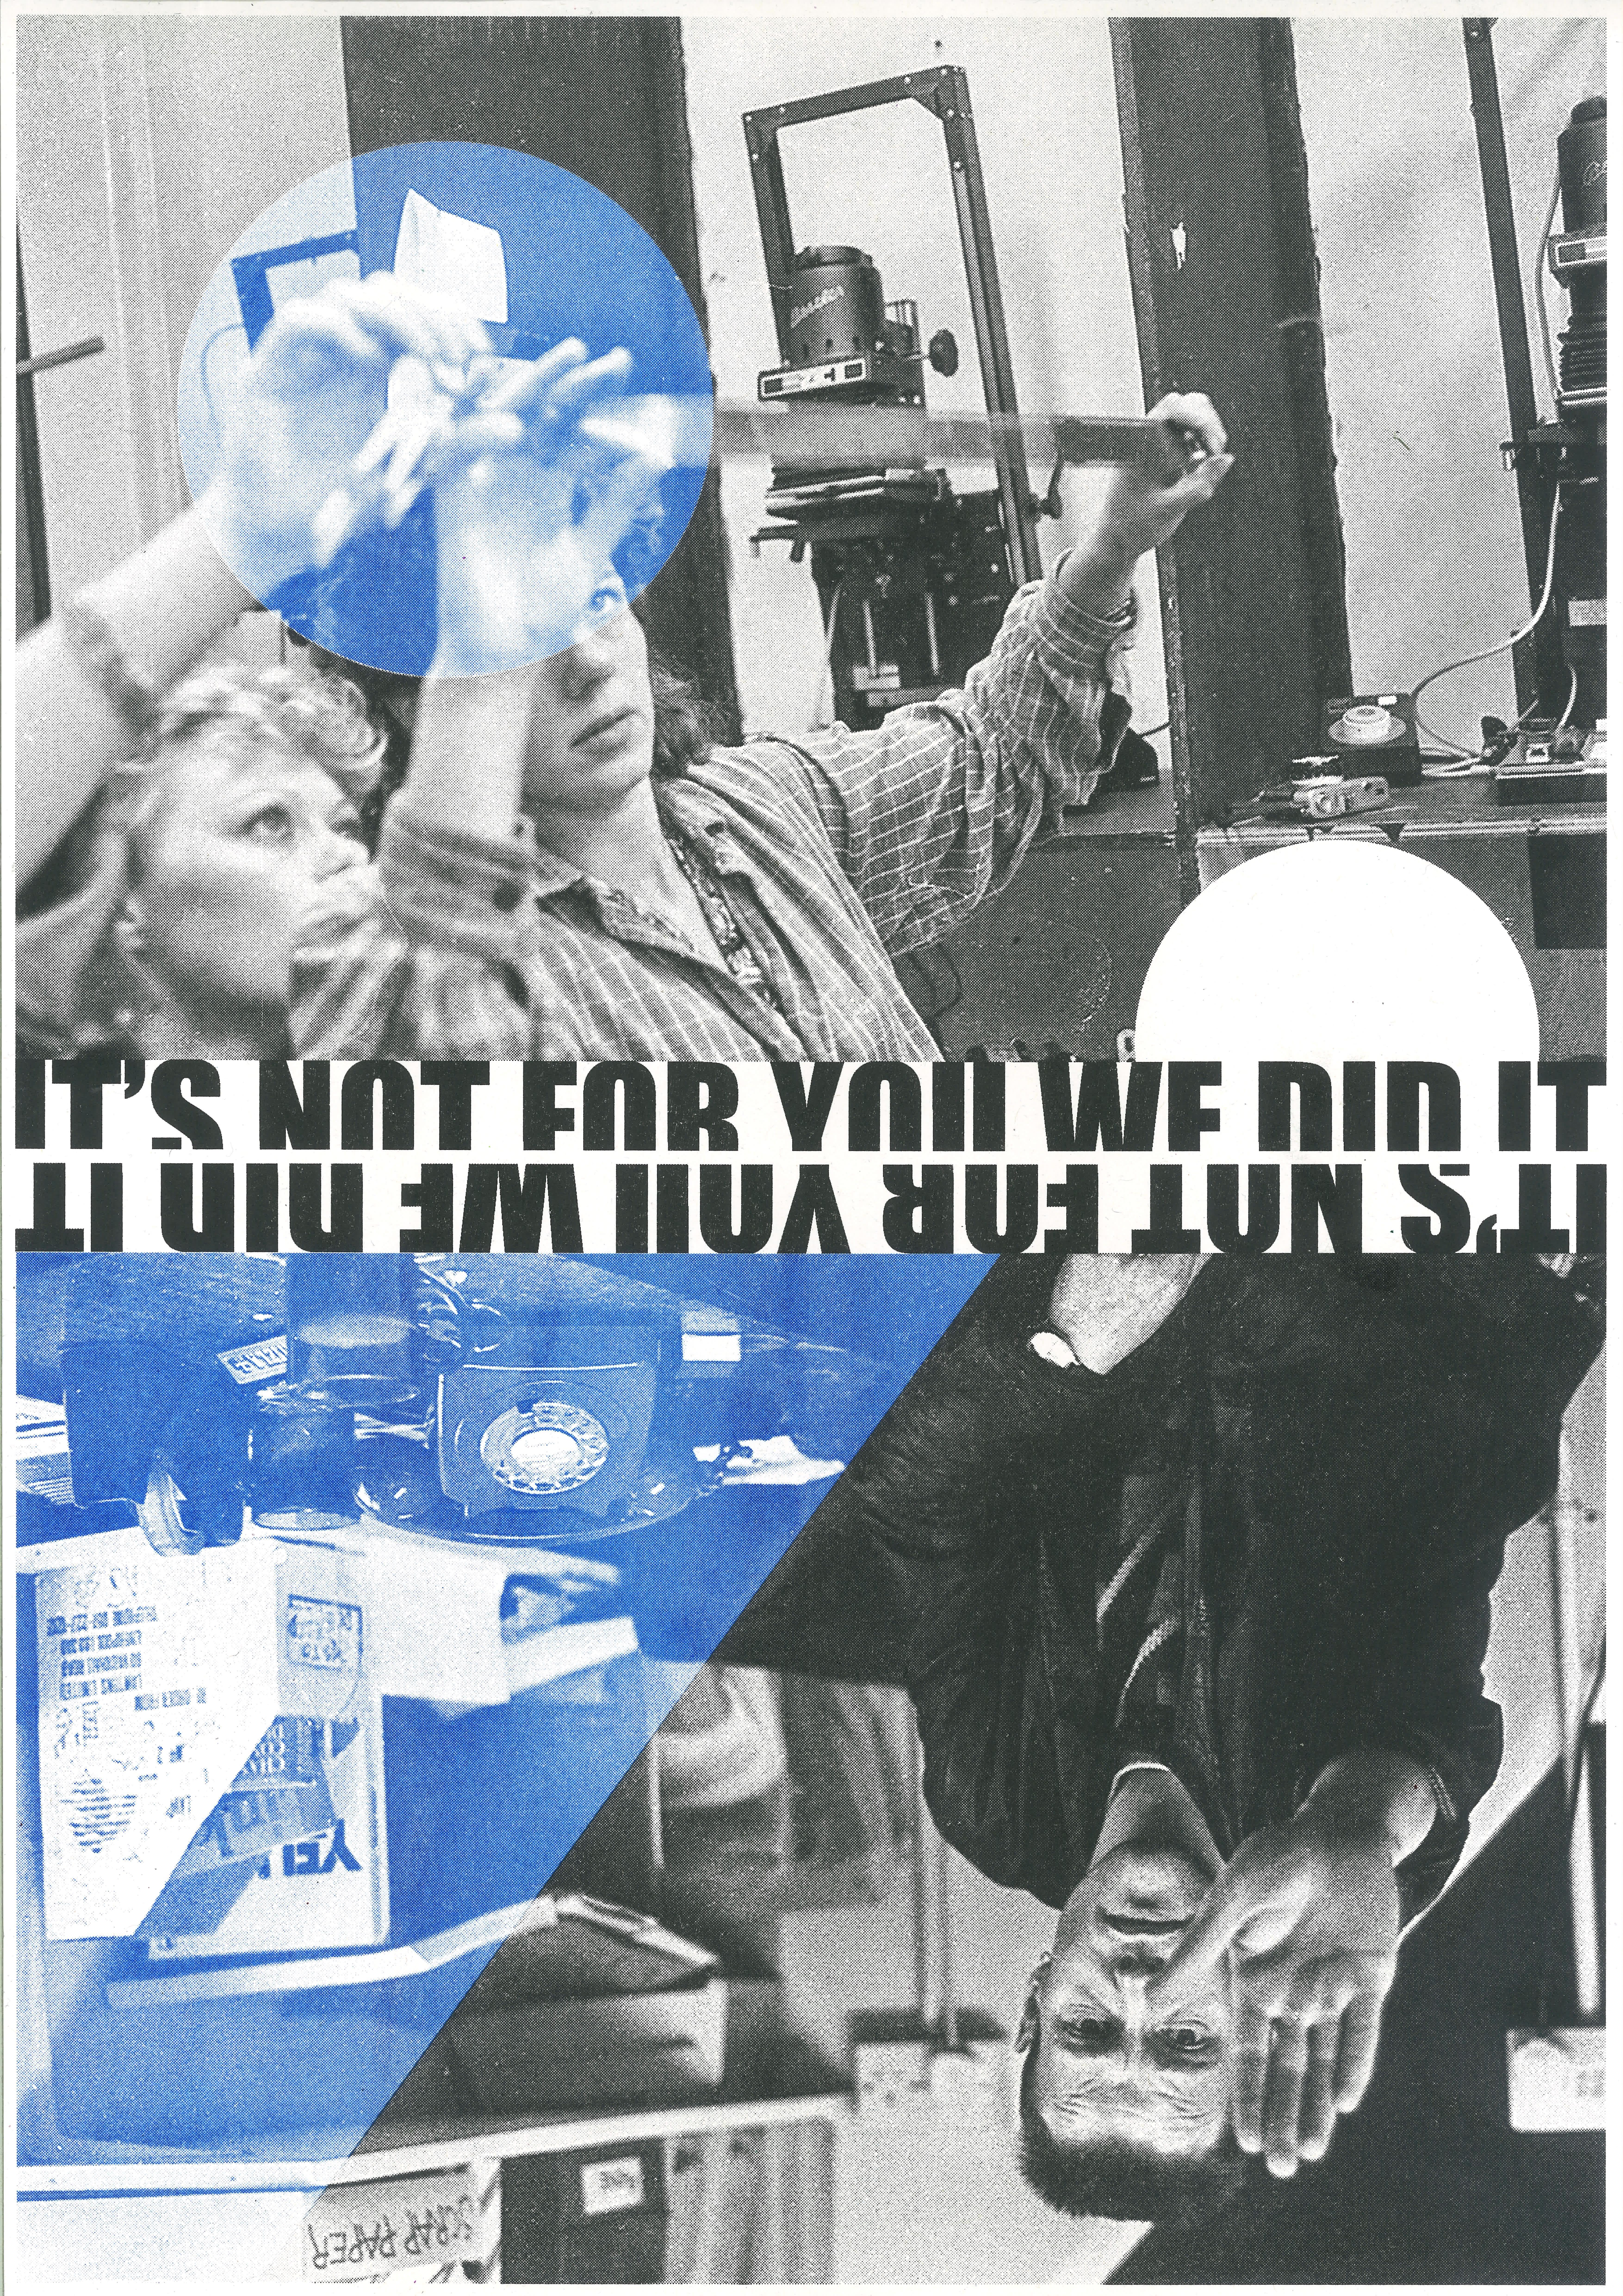 Scanned risograph version of Poster 1, It's not for you we did it Reversible poster in black and white with blue and white geometric elements. One image shows two people looking at a roll of photographic negatives together. Another person holds a hand up as if to block the picture being taken. The text IT'S NOT FOR YOU WE DID IT is in the centre of the page, facing up and inverted, so the poster can be viewed with either side up. Photographic images, Creative Commons BY-NC-SA, Camerawork Derry.